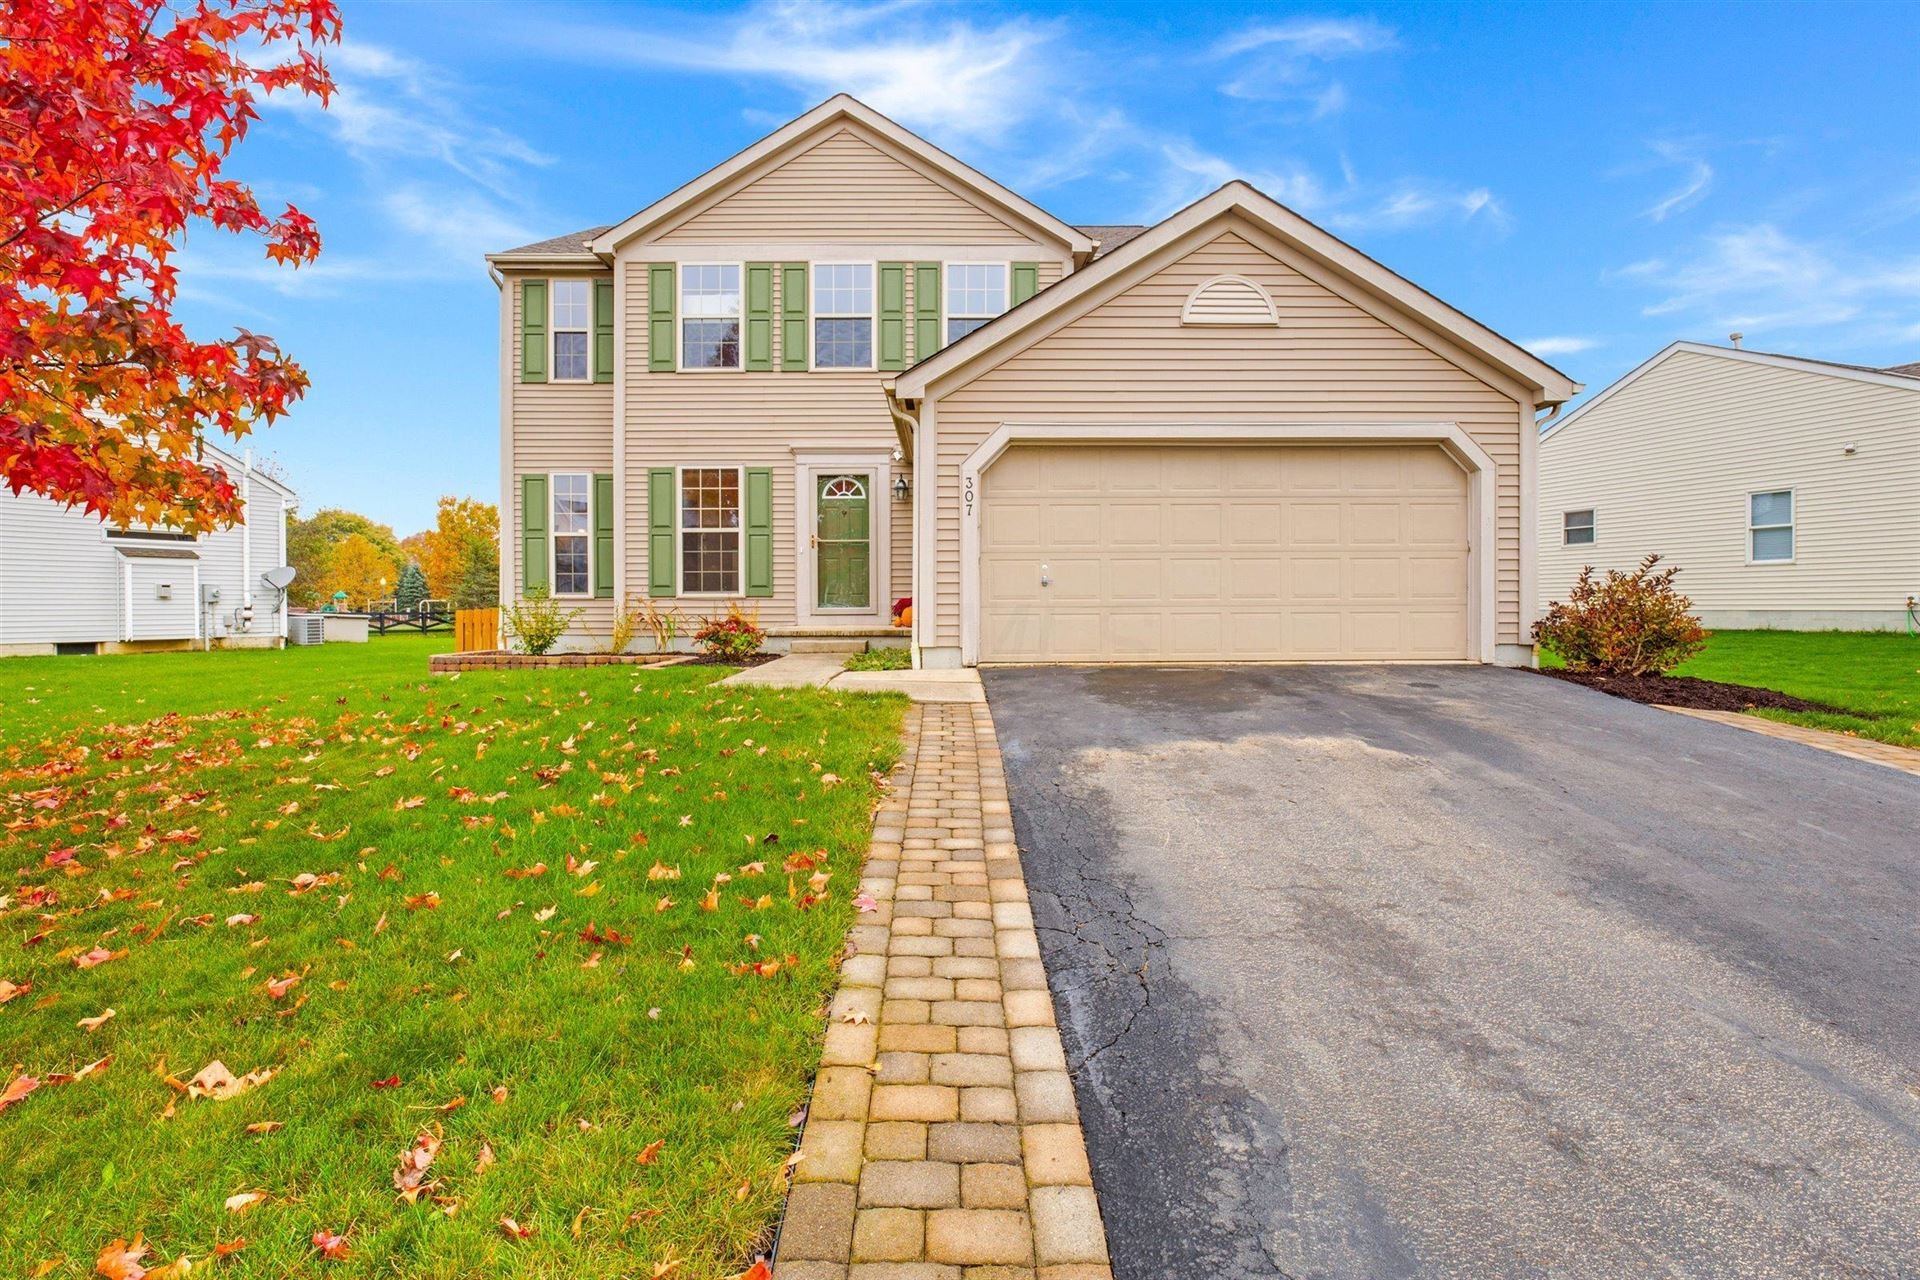 Photo of 307 Cherry Leaf Road, Delaware, OH 43015 (MLS # 220038081)